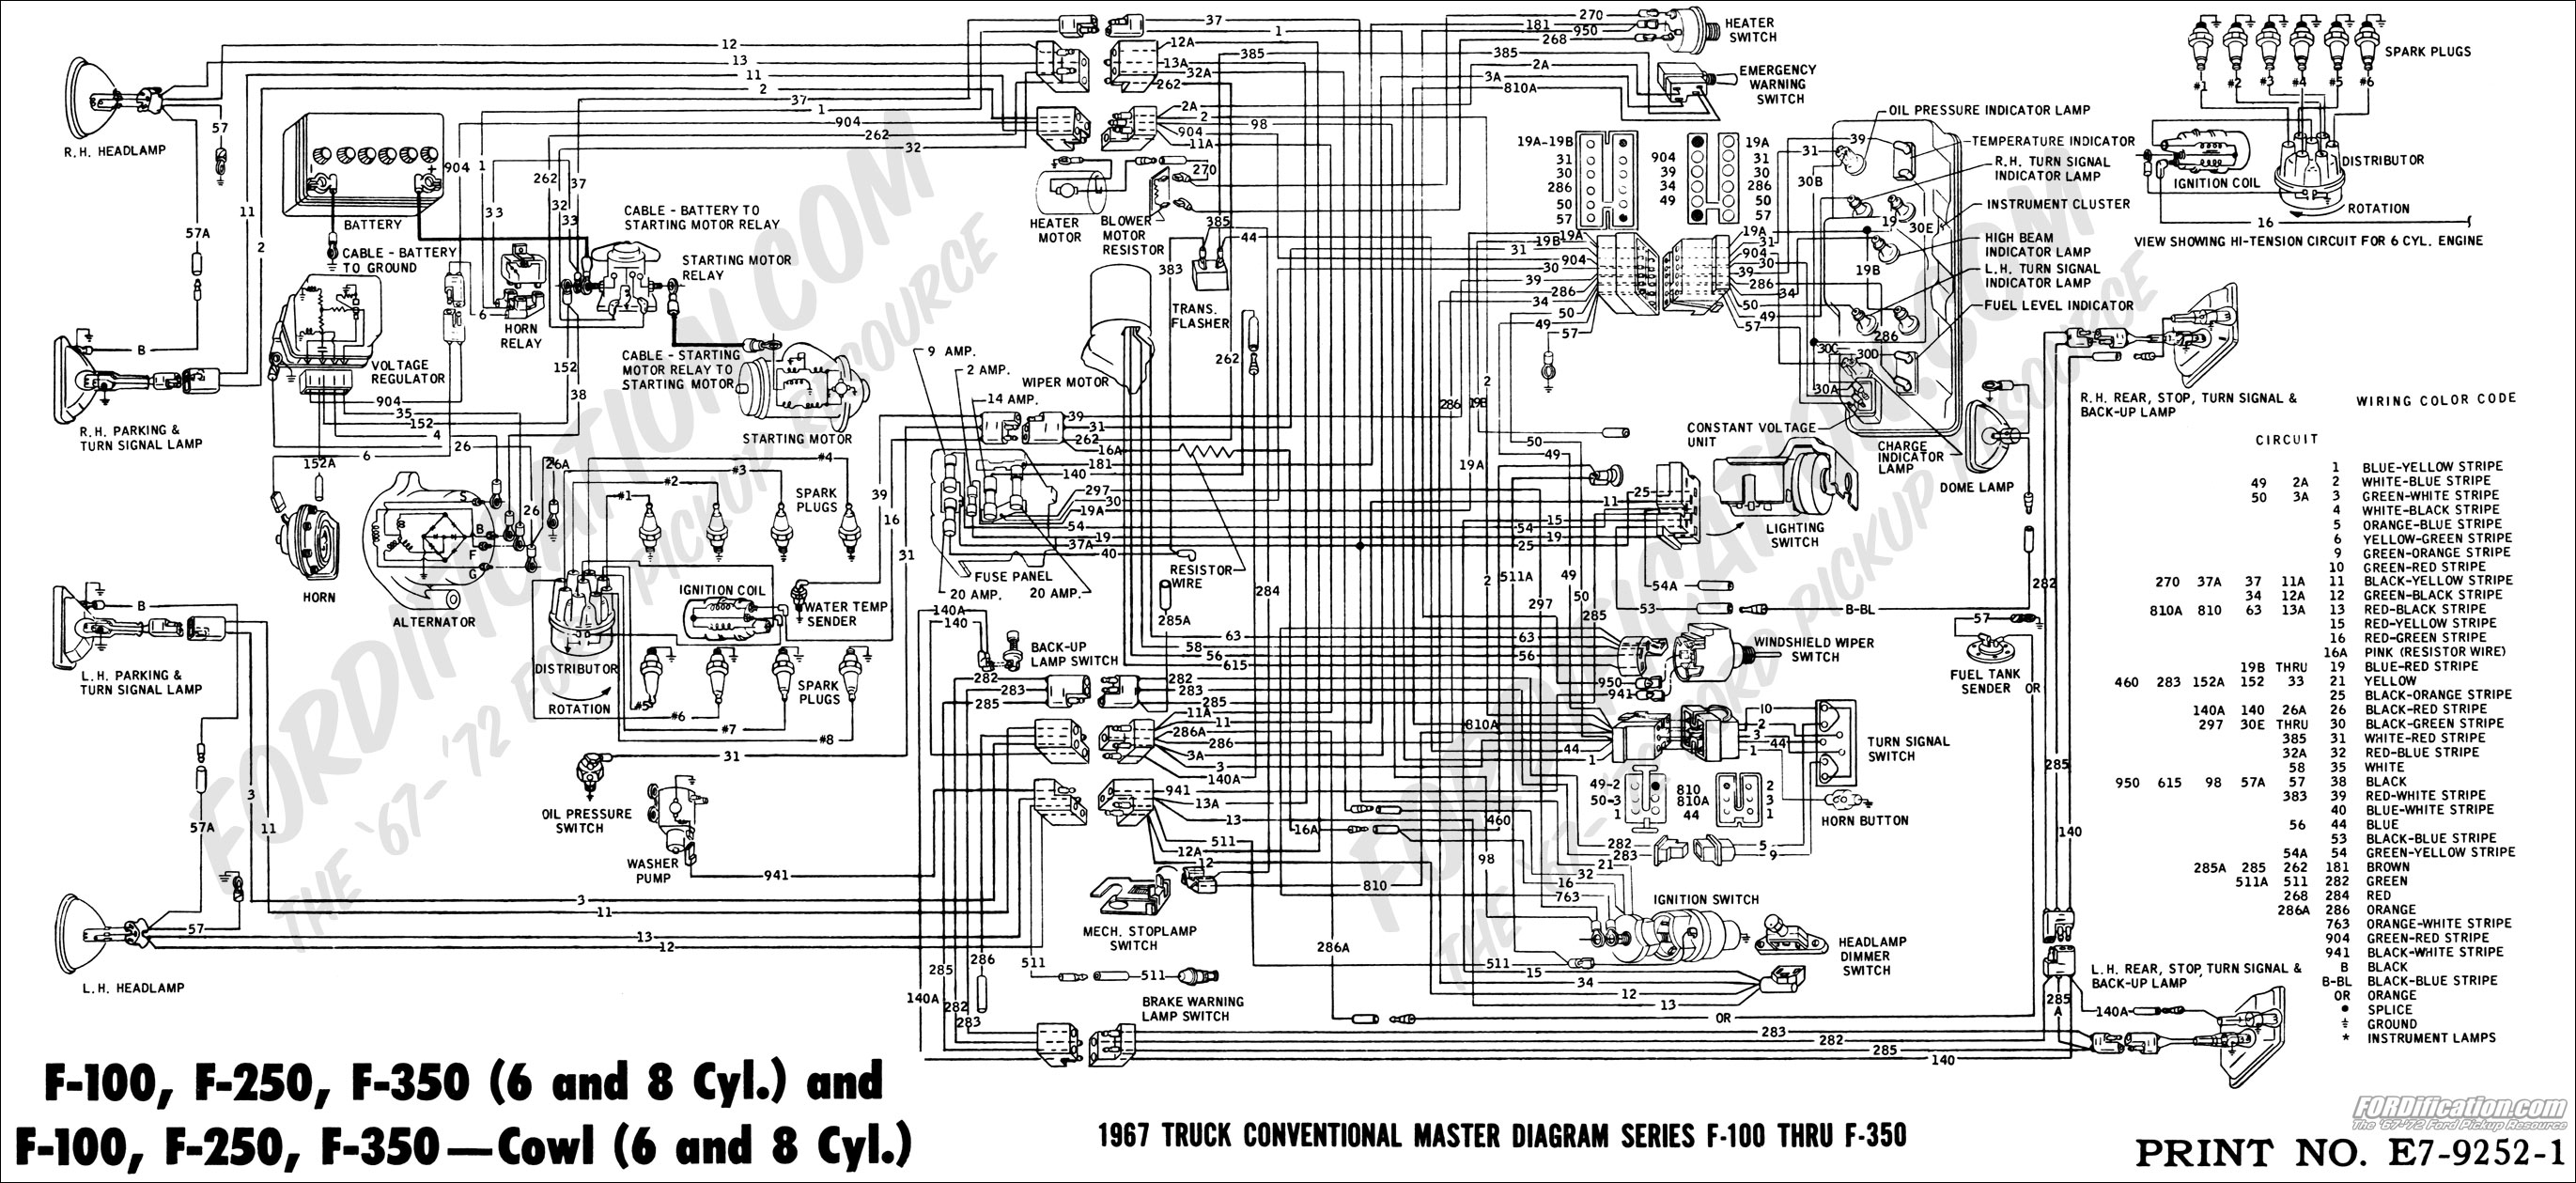 67masterdiagram ford truck technical drawings and schematics section h wiring 1994 ford f150 ignition switch wiring diagram at honlapkeszites.co